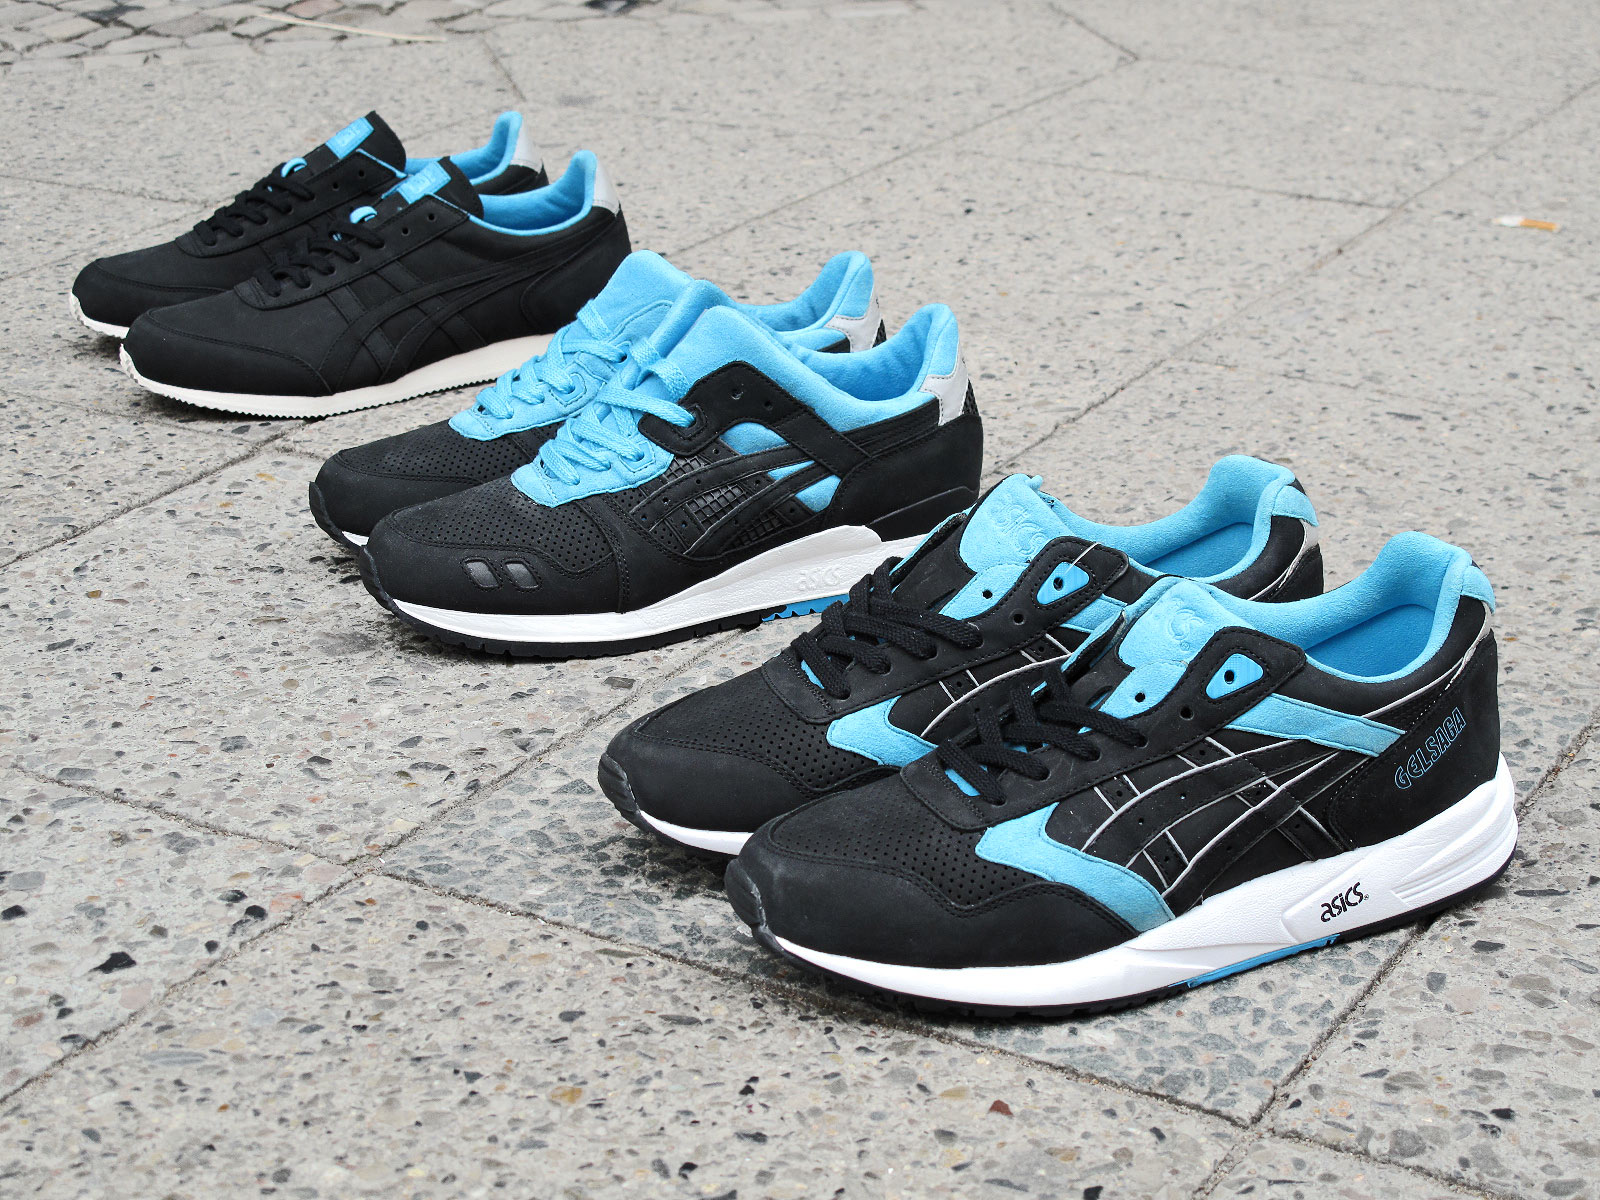 Asics x Solebox black